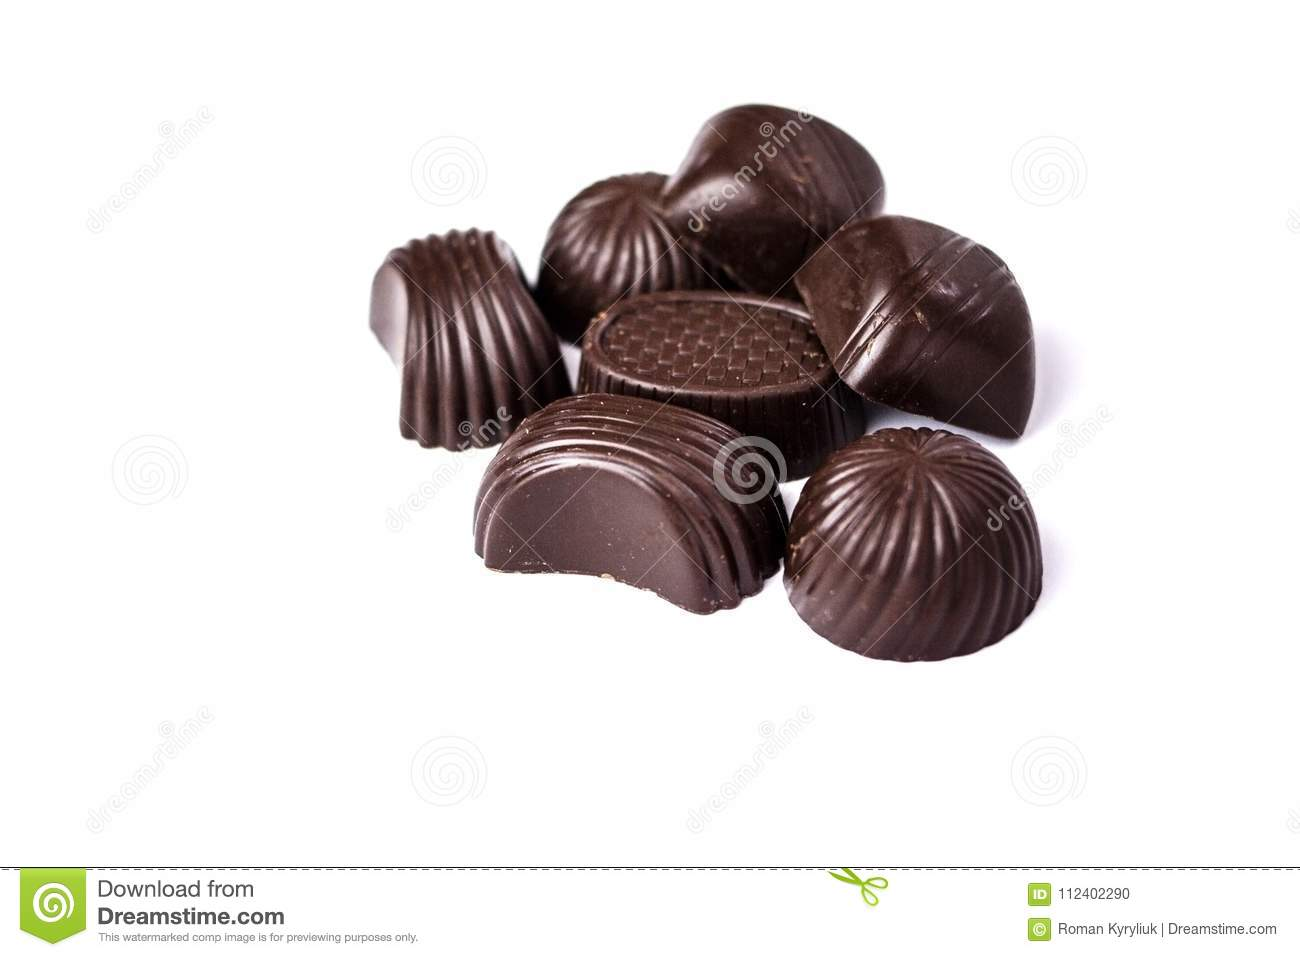 Chocolate candies on a white background